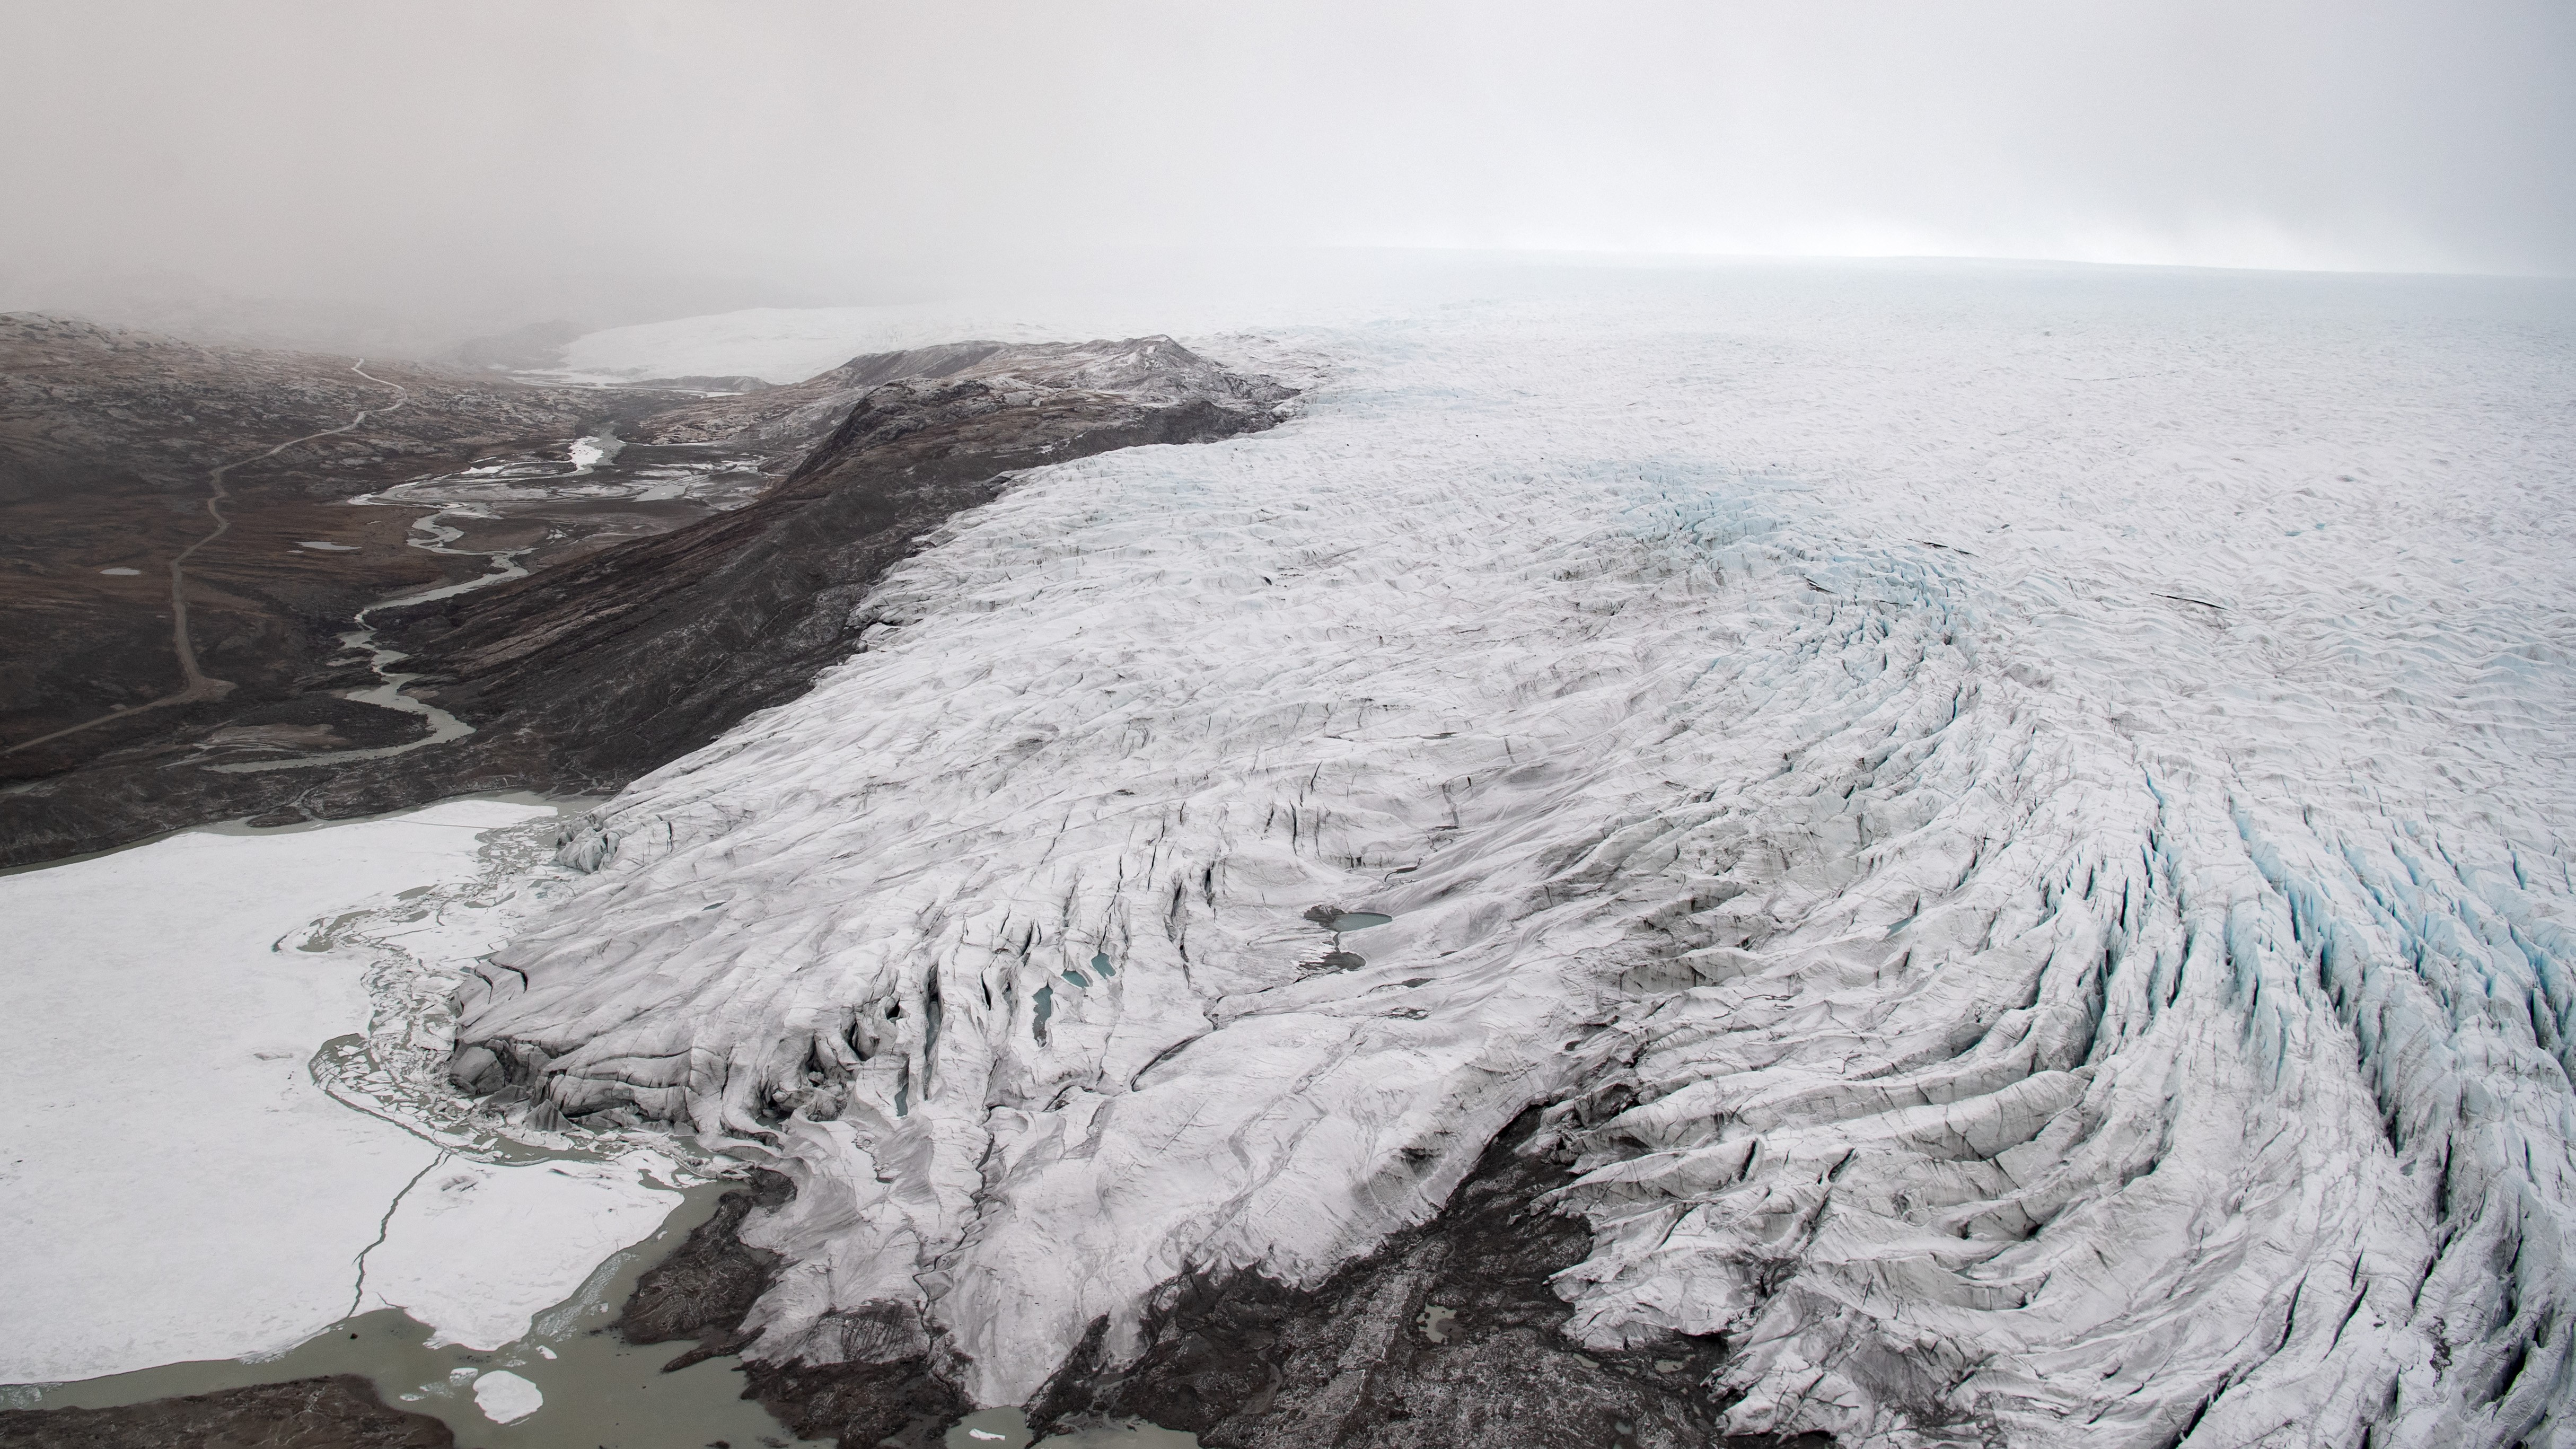 Ice receding from a glacier near Kangerlussuaq, Greenland. This photo was taken during a helicopter tour of the region with US Secretary of State Antony Blinken in May 2021.